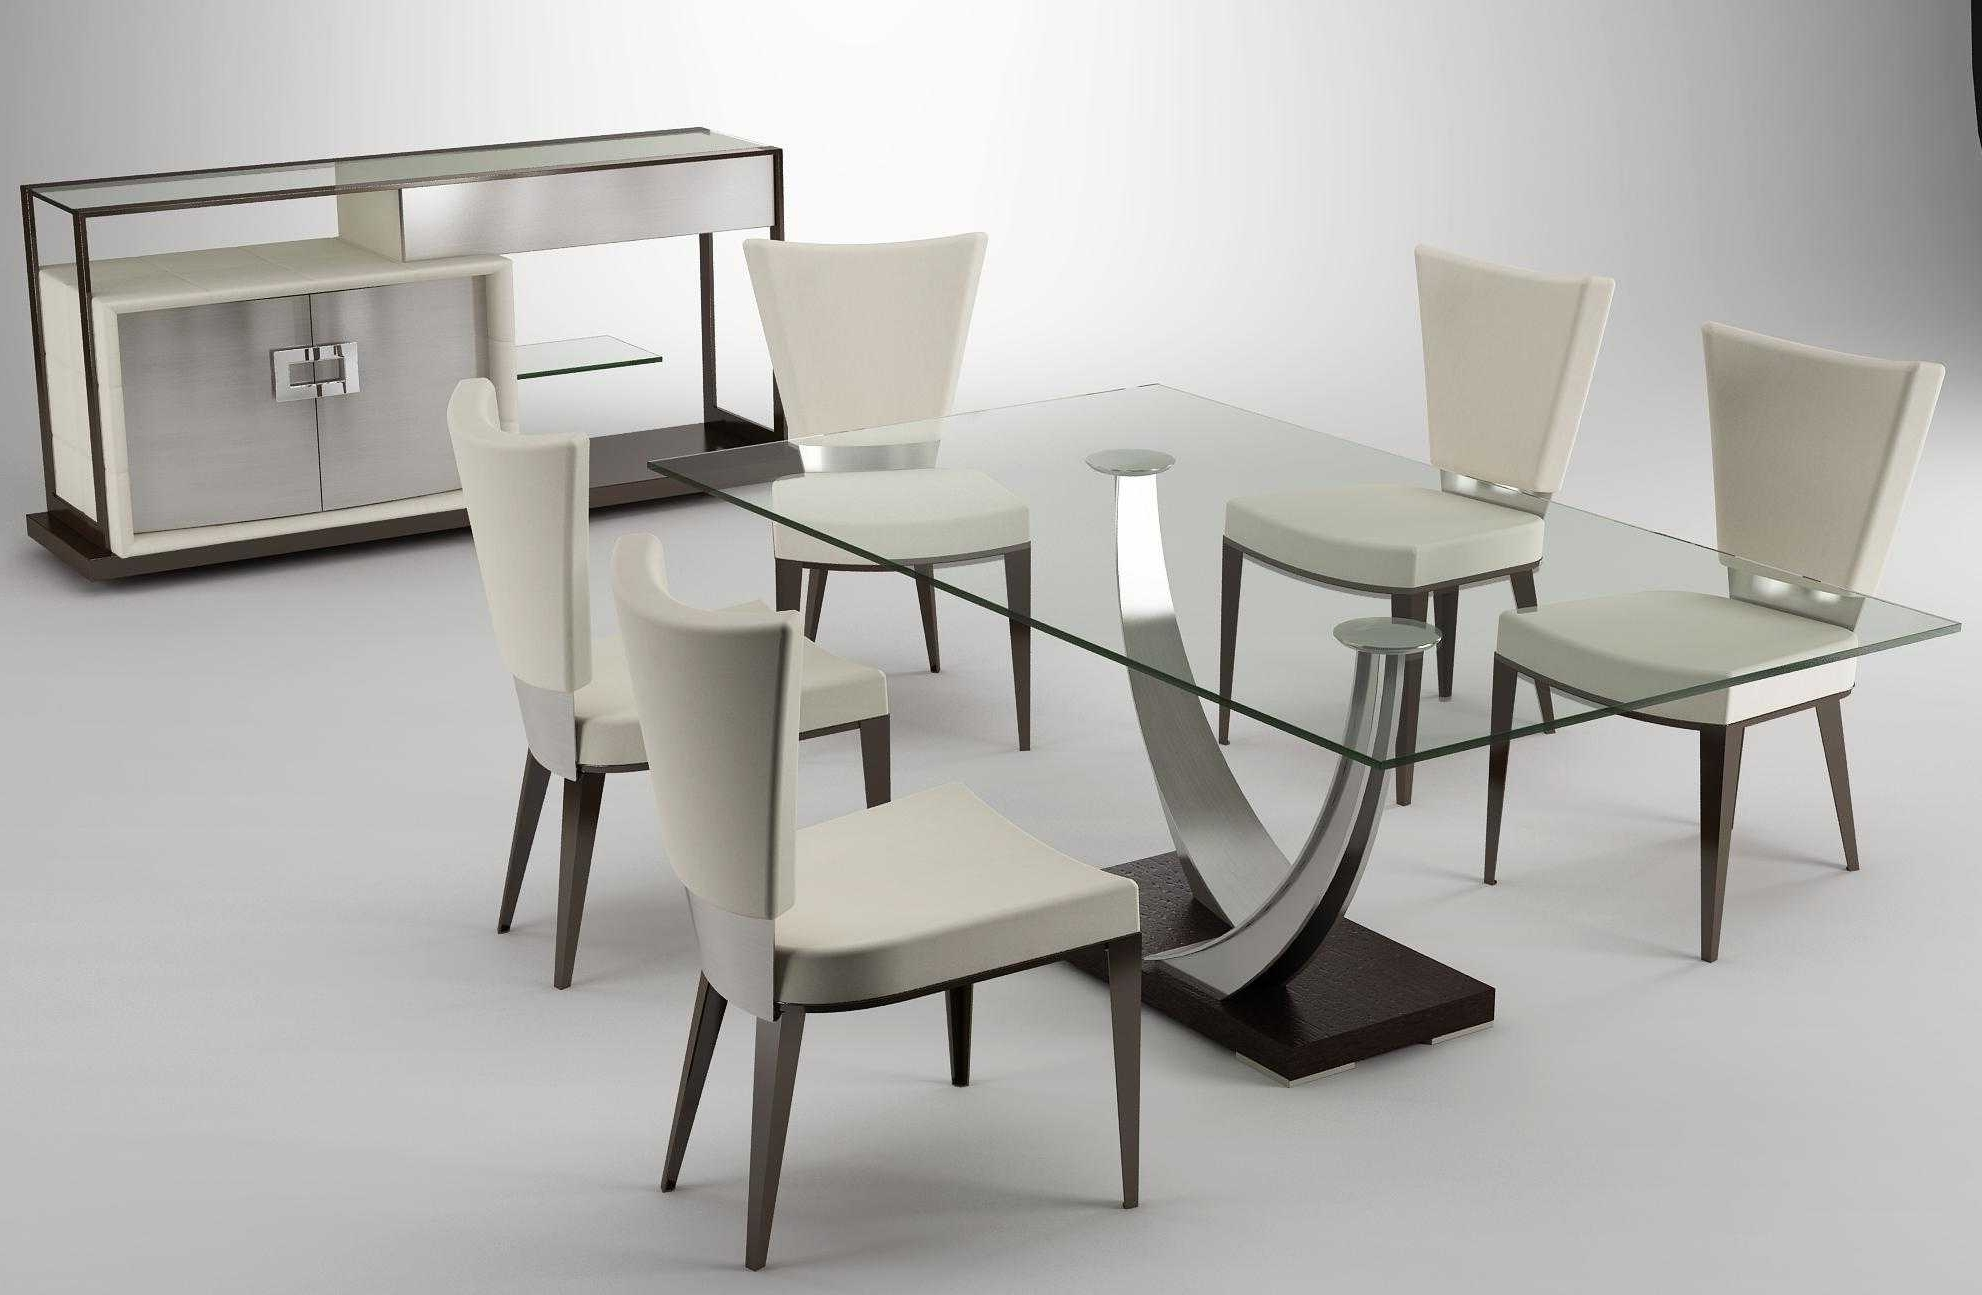 Modern Dining Tables And Chairs Within 2018 Dining Room Contemporary Nook Dining Set Modern Glass Dining Table (View 17 of 25)